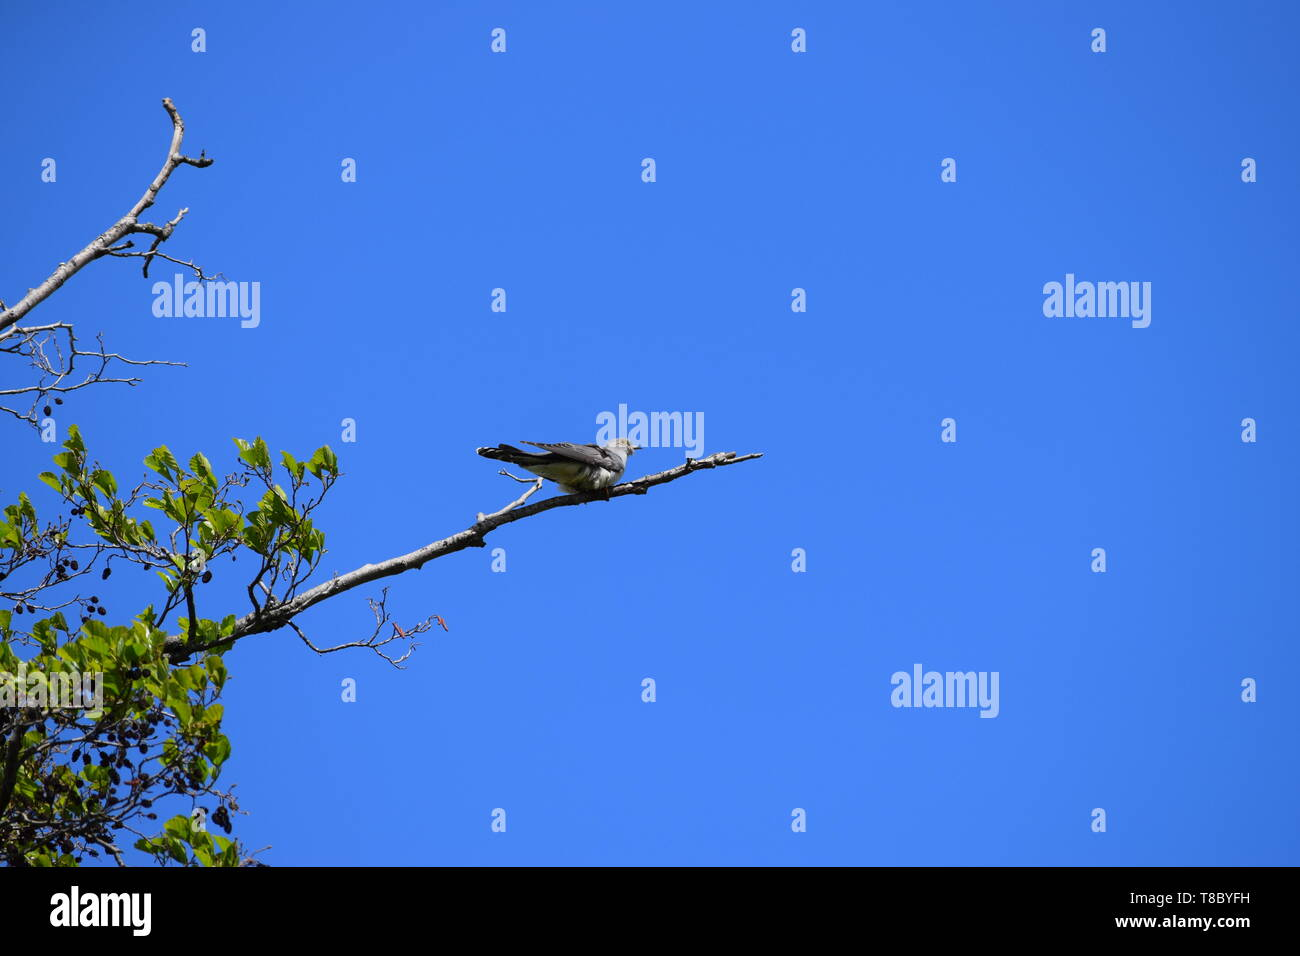 Cuckoo on a Branch - Stock Image